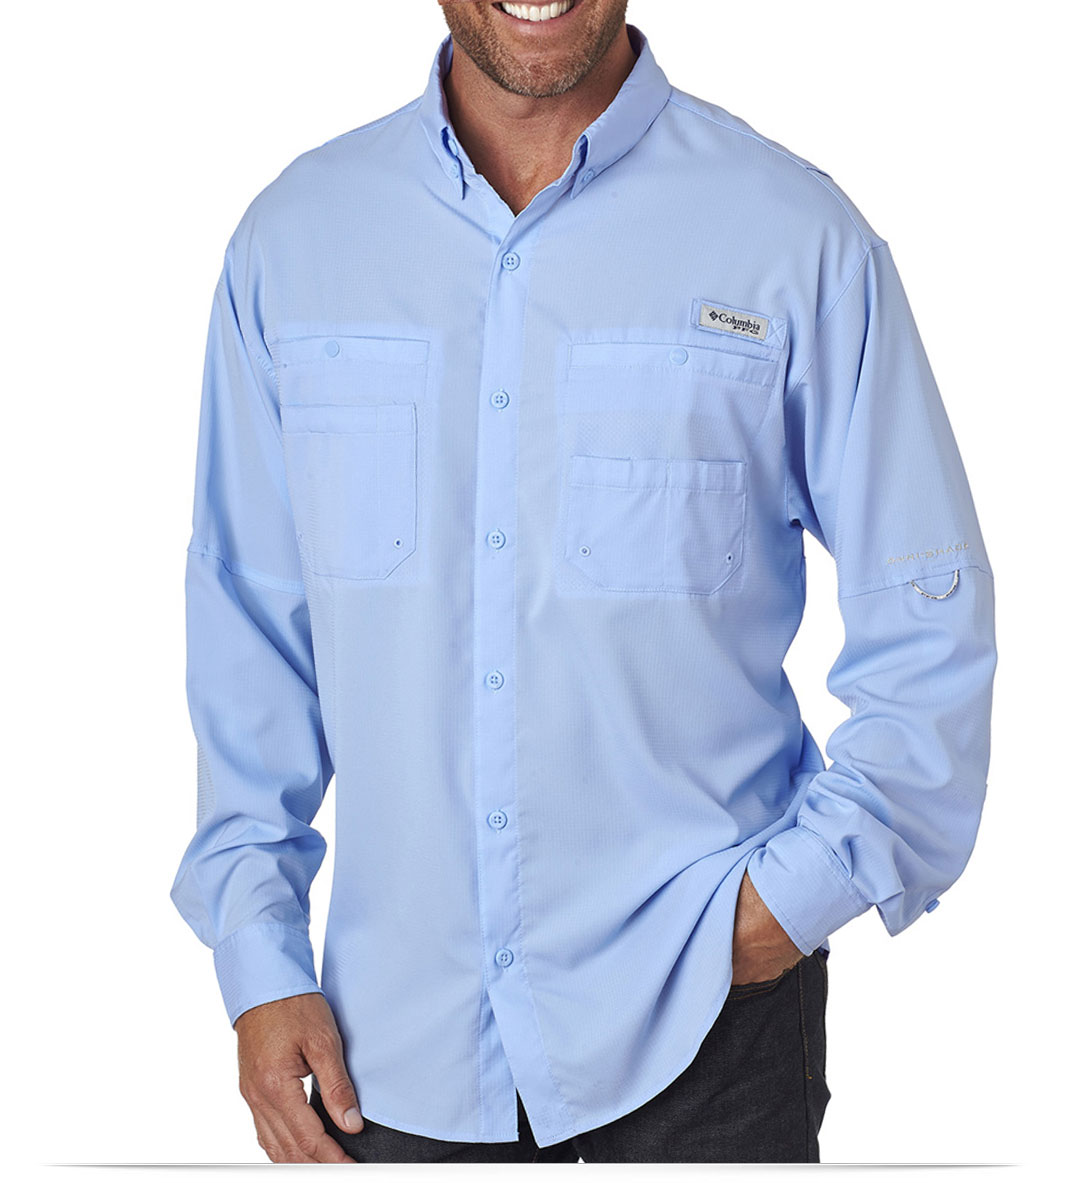 Design embroidered columbia men 39 s long sleeve shirt online for Embroidered work shirts no minimum order